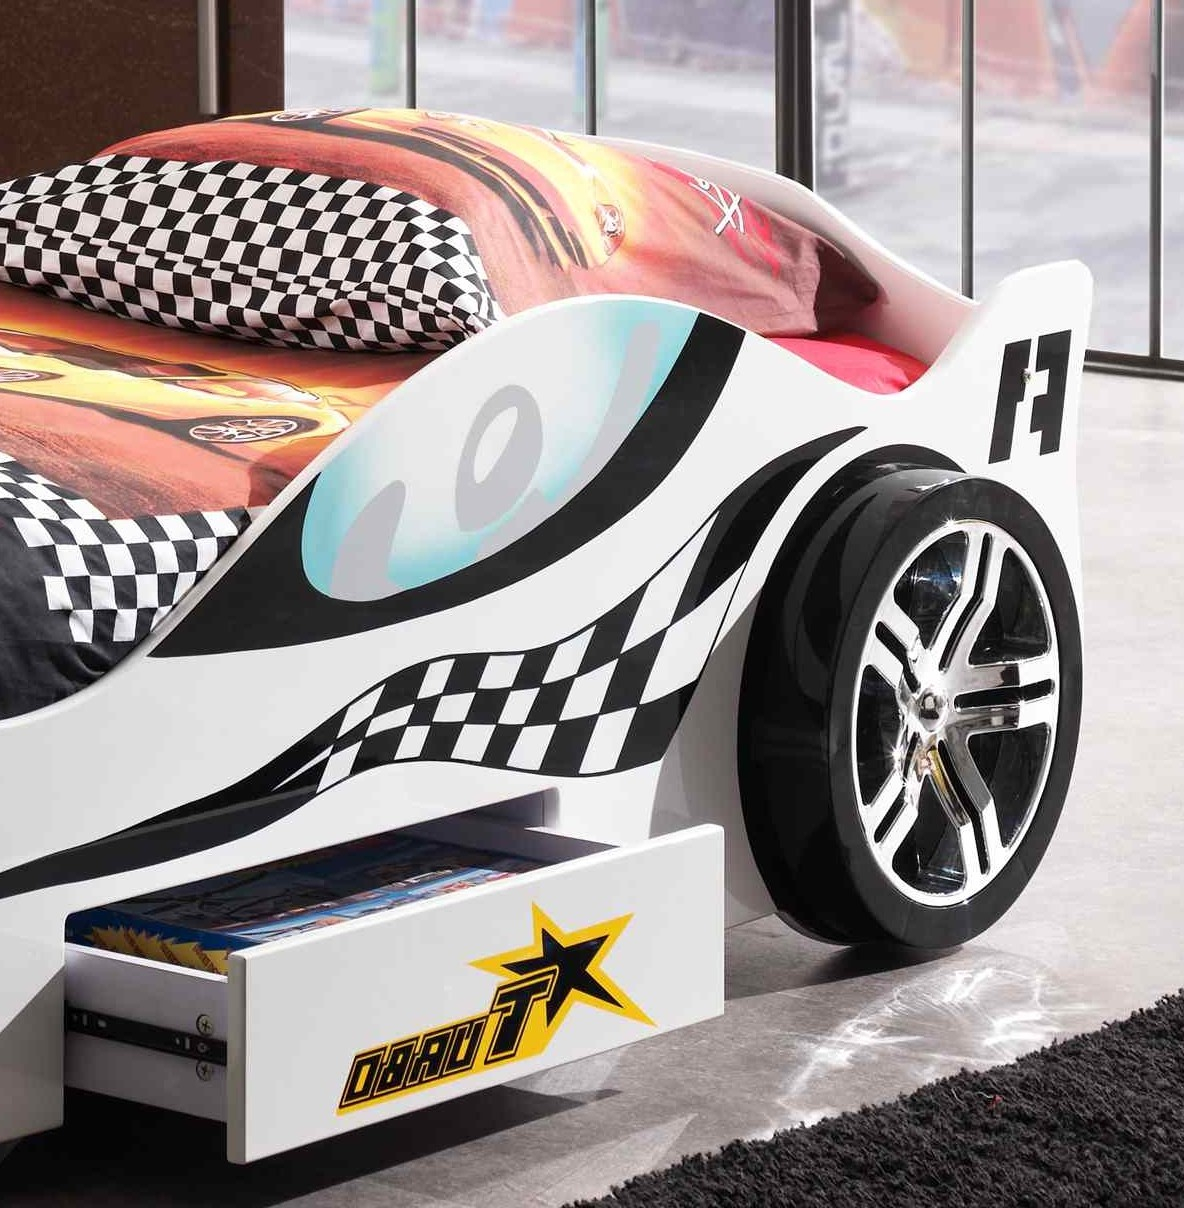 neu kinderbett turbo racing autobett rennautobett mit lattenrost 90 x 200 weiss ebay. Black Bedroom Furniture Sets. Home Design Ideas